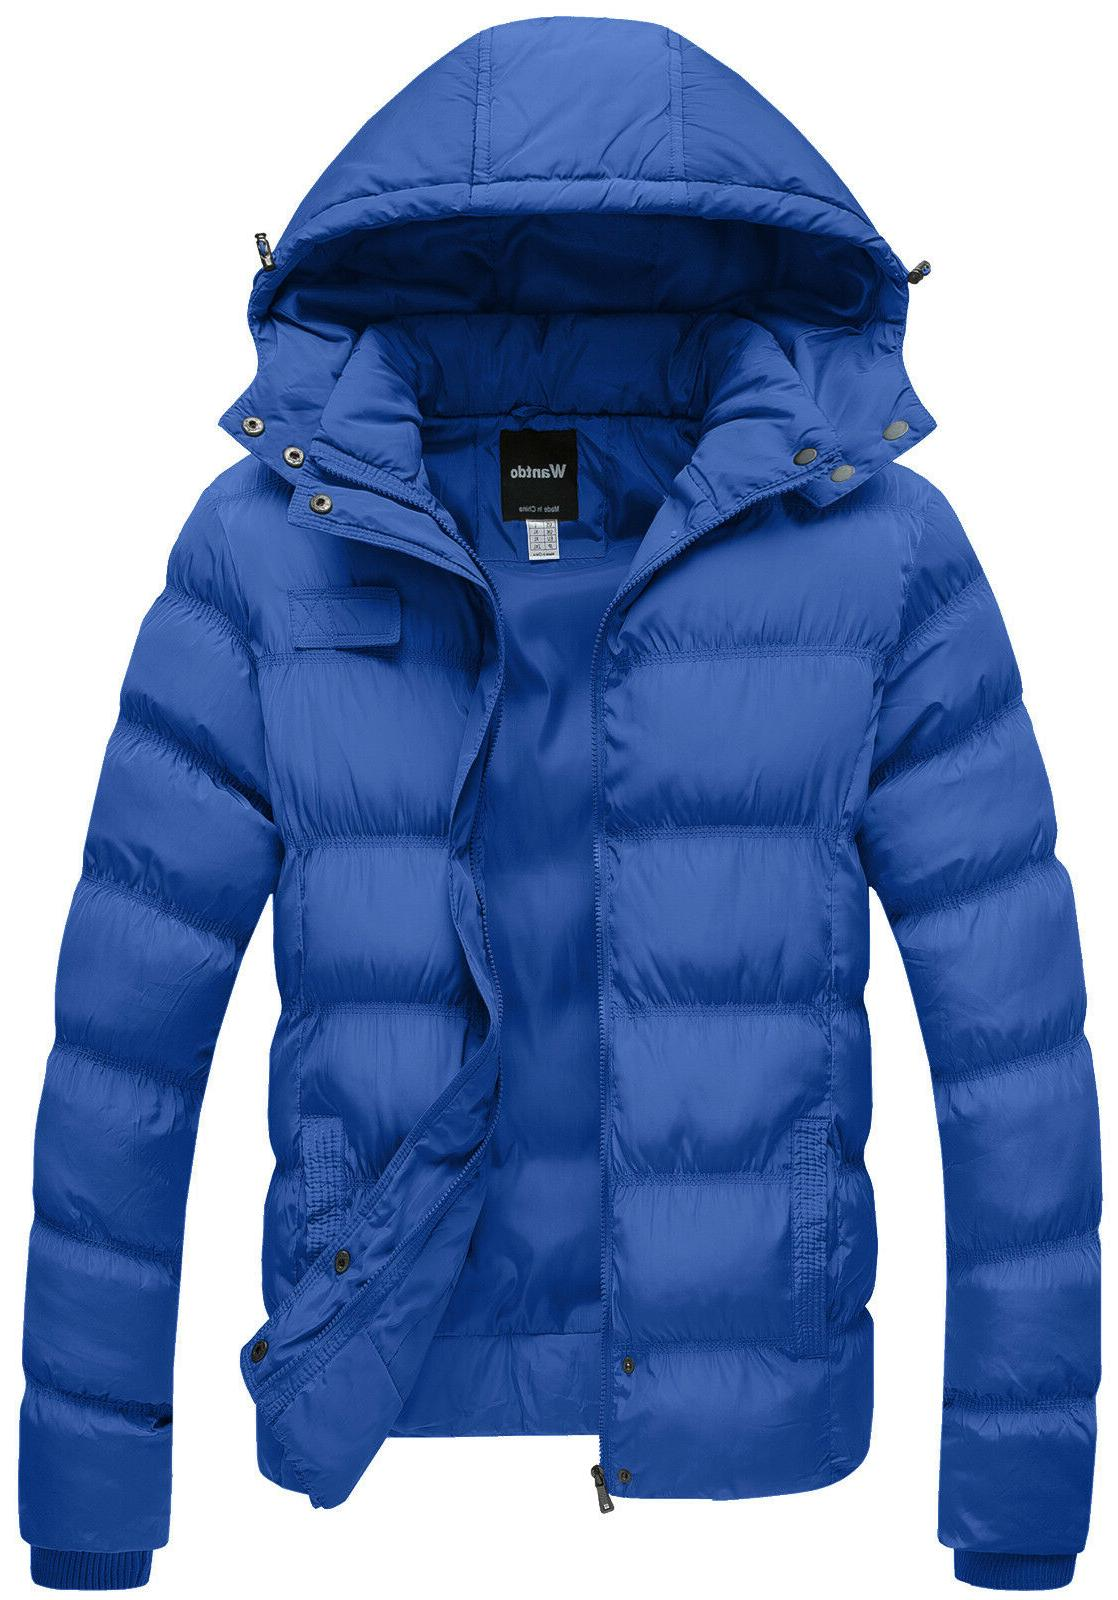 Wantdo Men's Thicken Cotton Coat Puffer Jacket with Hood